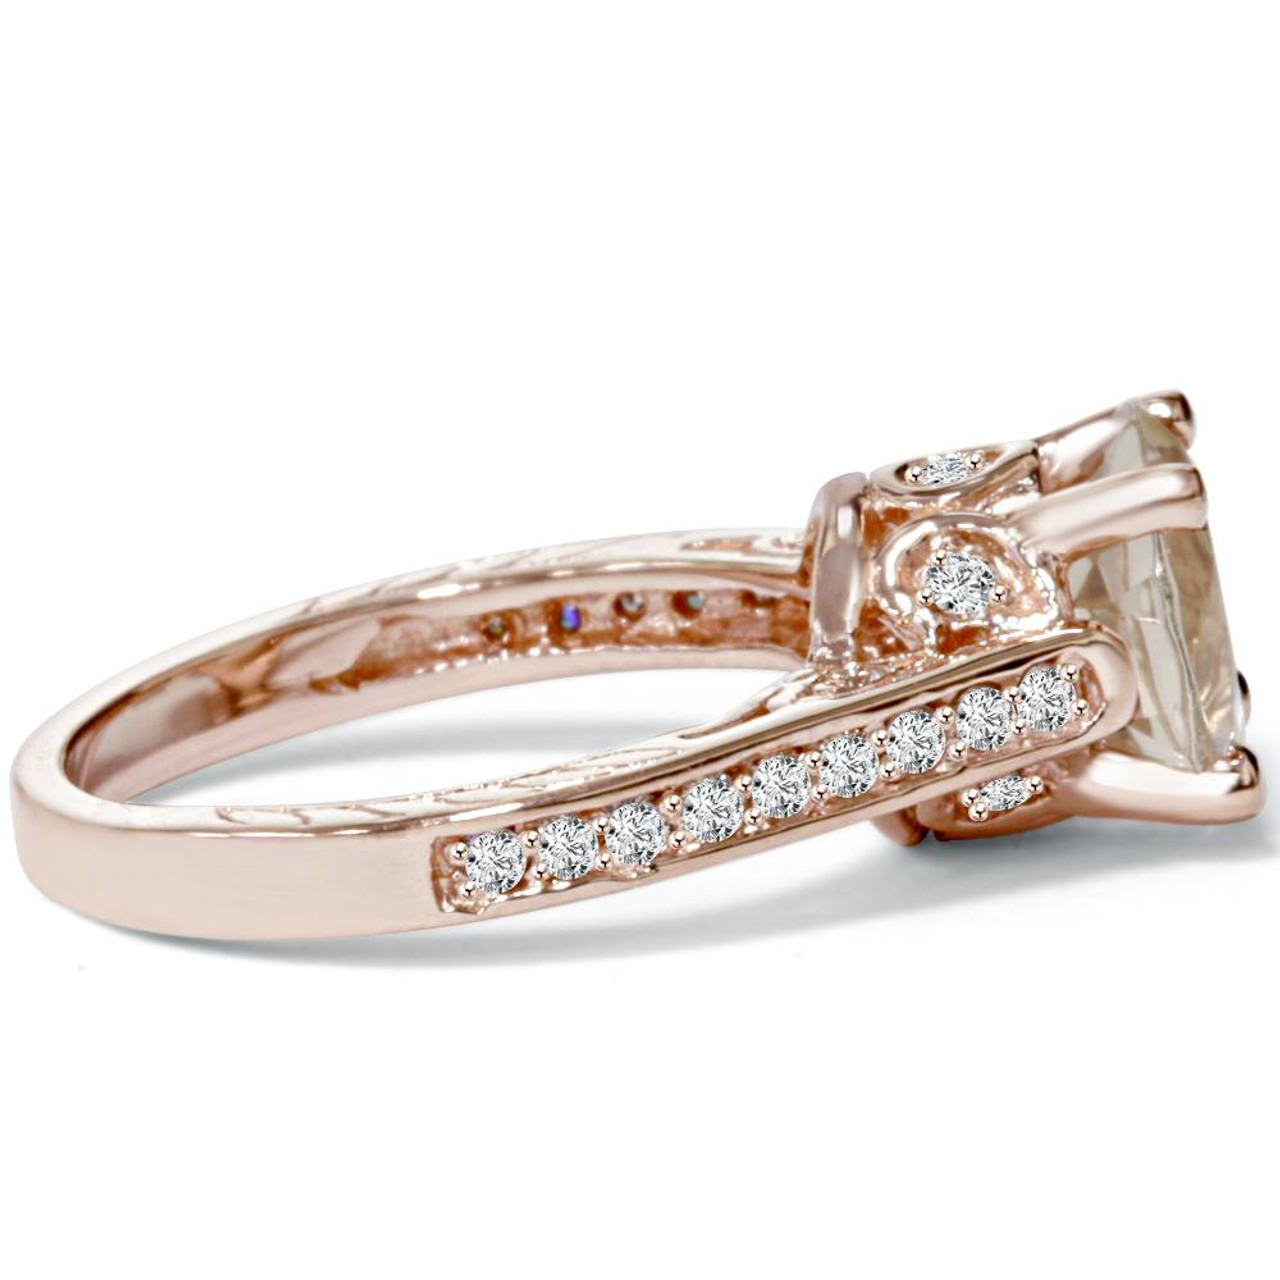 dalby shop starlight morganite rings ring pink diamonds diamond